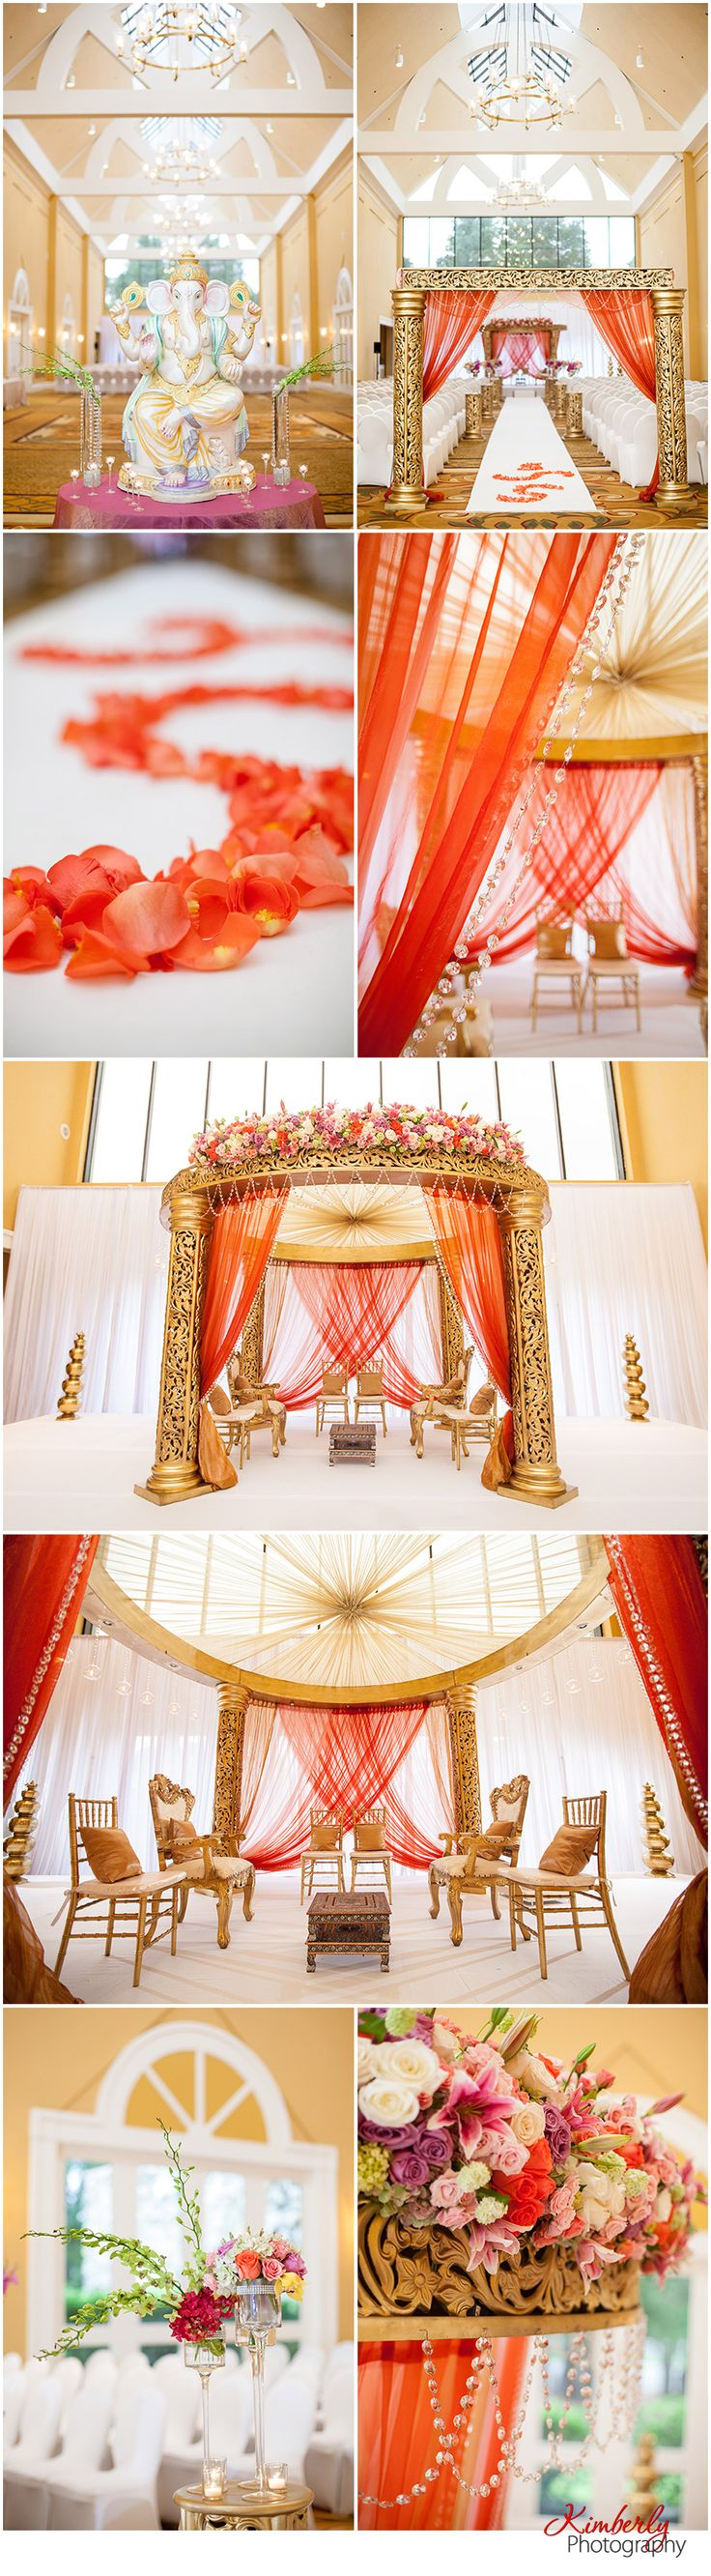 Get Inspired with this romantic mandap decor!